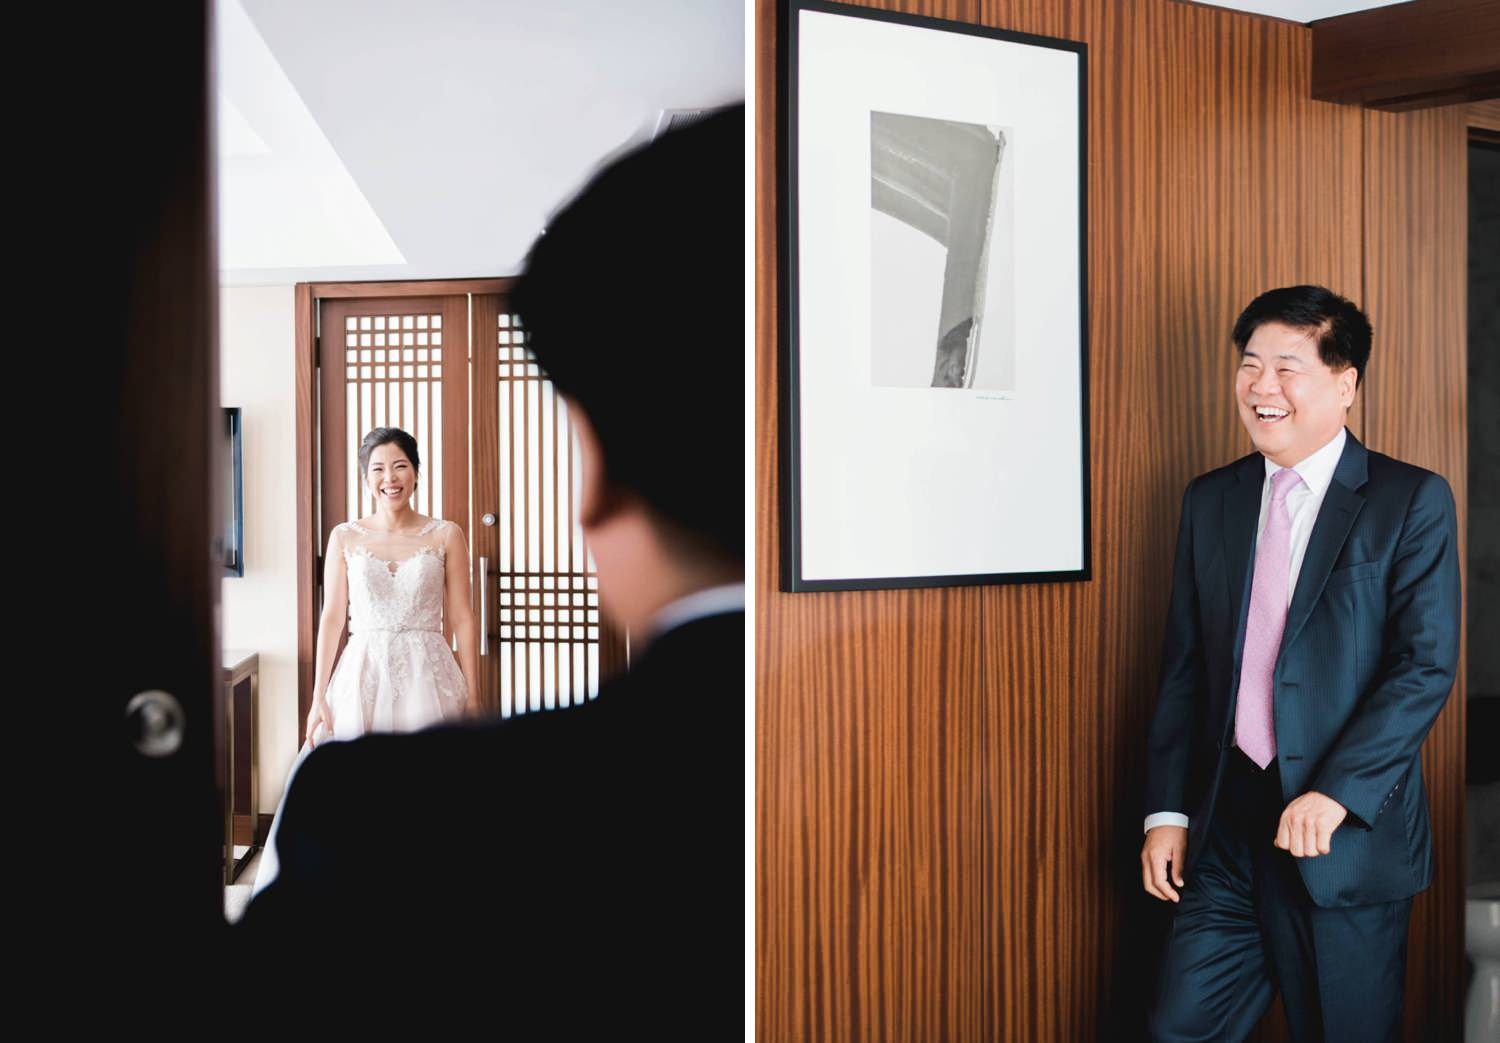 First look between father and bride at Shangri-La Hotel in Toronto